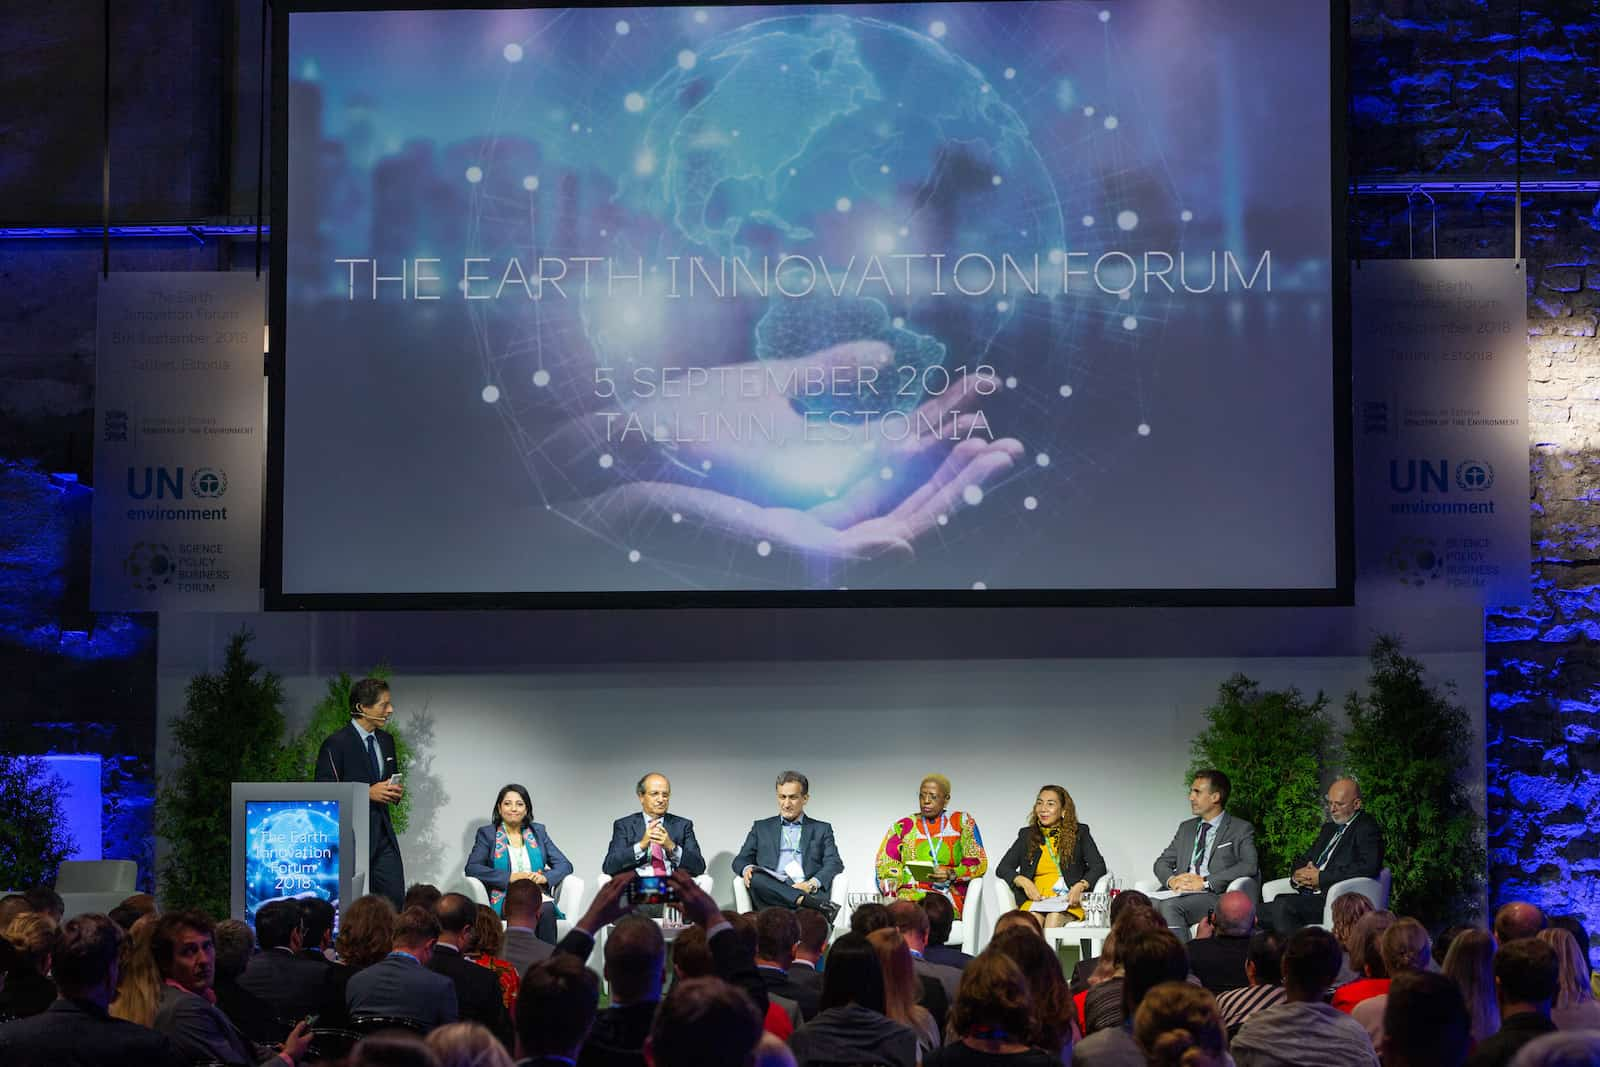 Earth Innovation Forum lays foundations for major UN Environment Assembly meeting